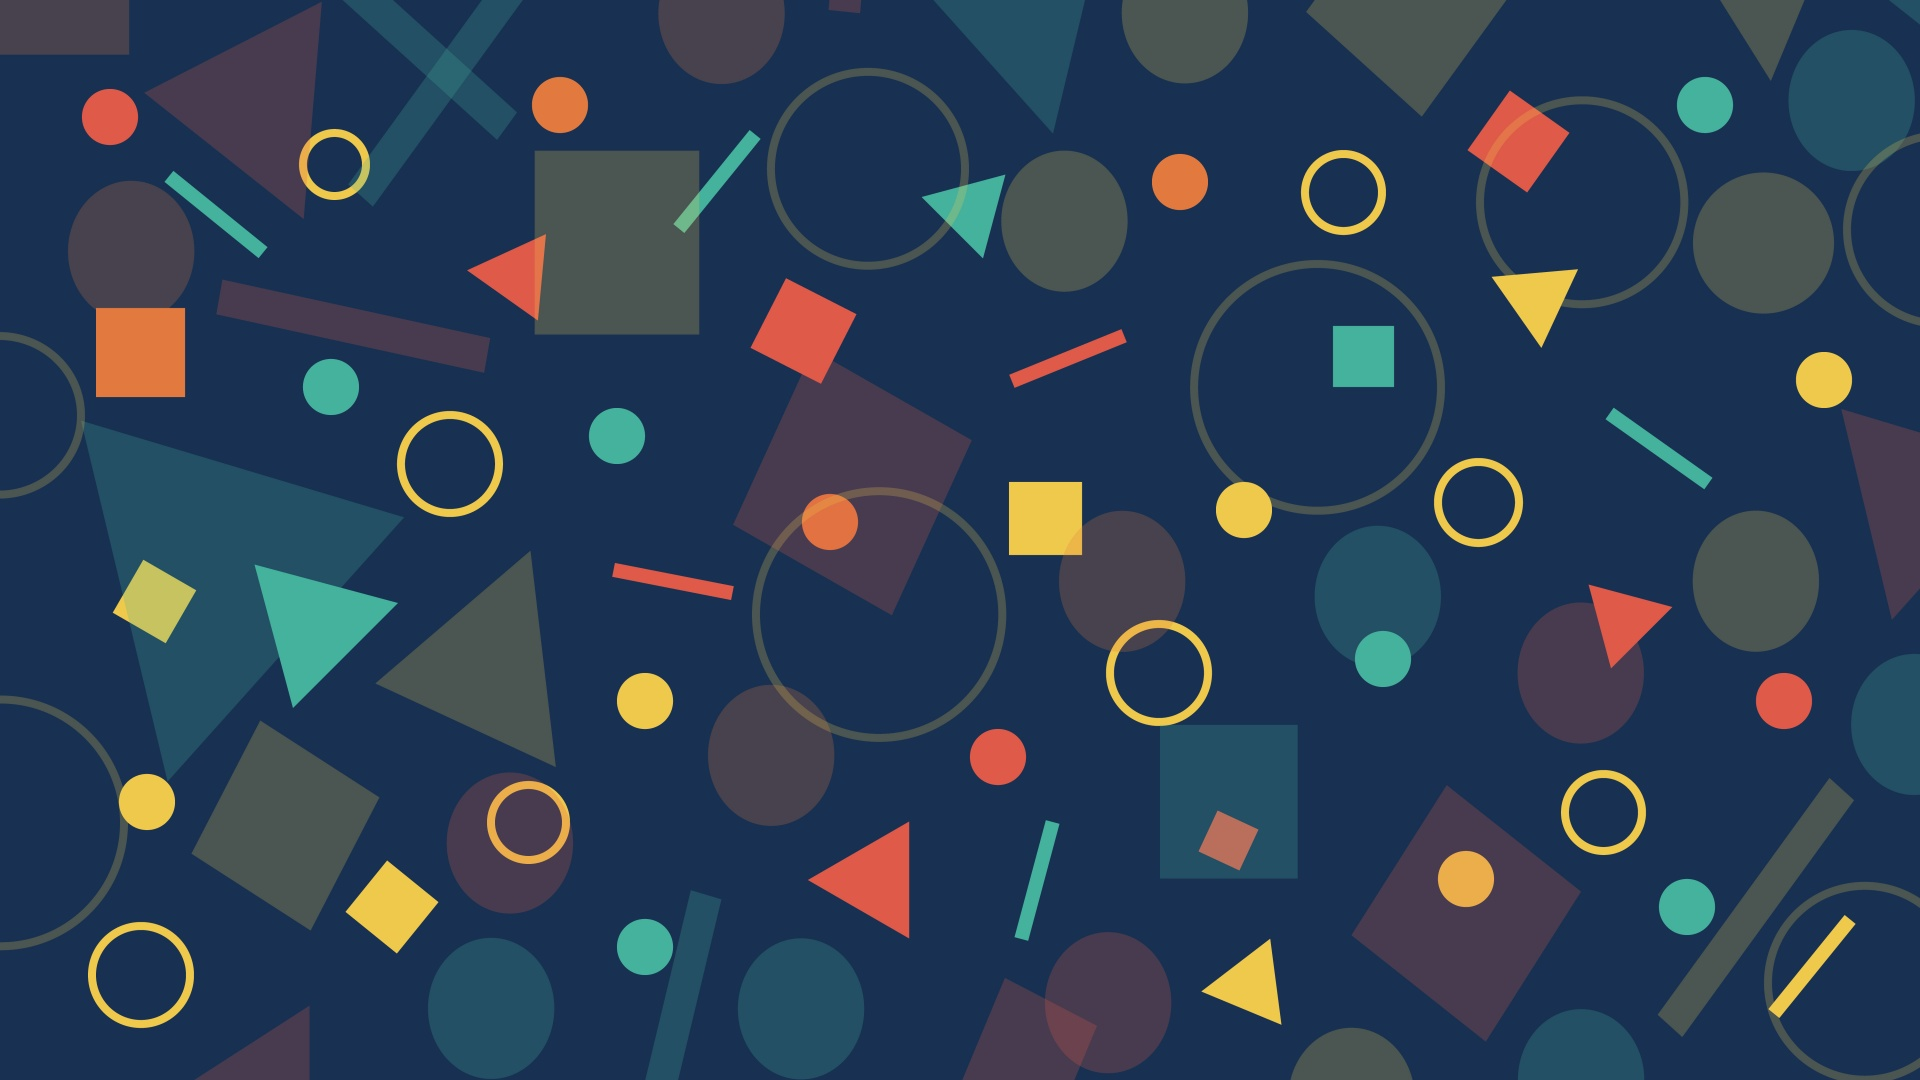 Background,backdrop,geometric,pattern,design - free photo from